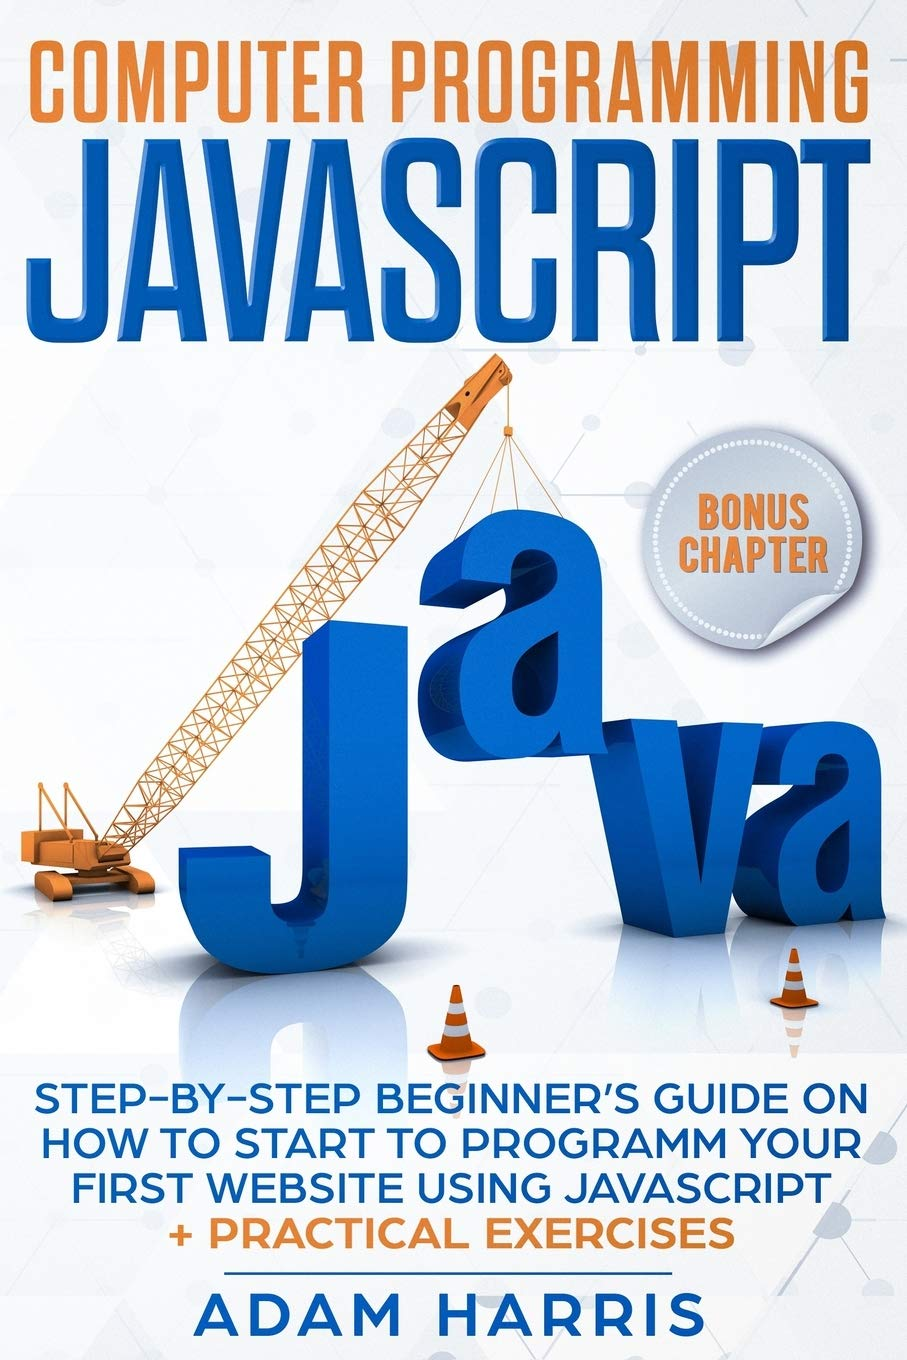 Computer programming Javascript: step-by-step beginner's guide on how to start to programm your first website using Javascript + practical exercises